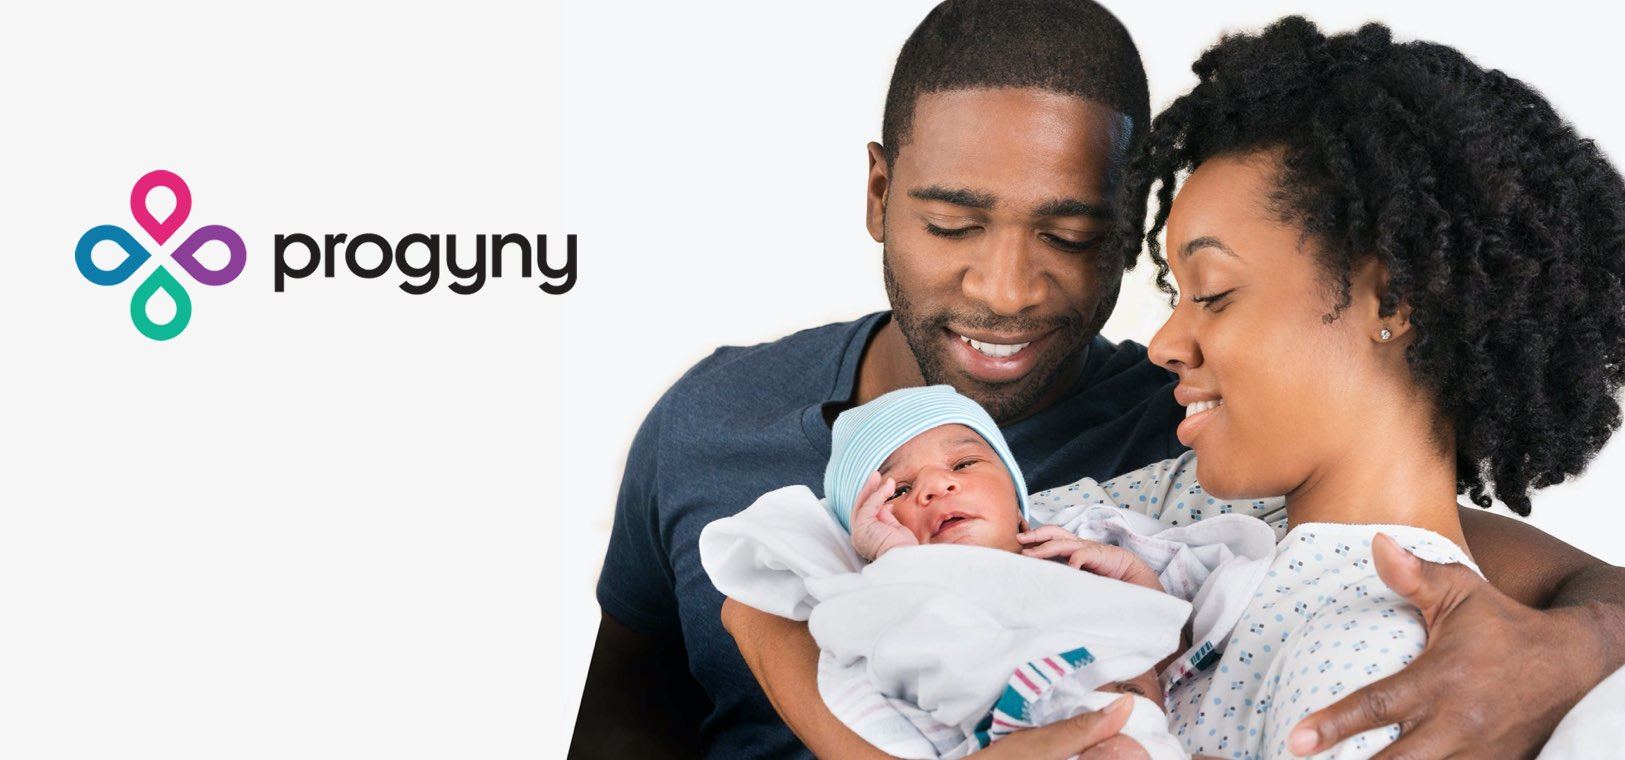 Progyny — helping people achieve the dream of parenthood